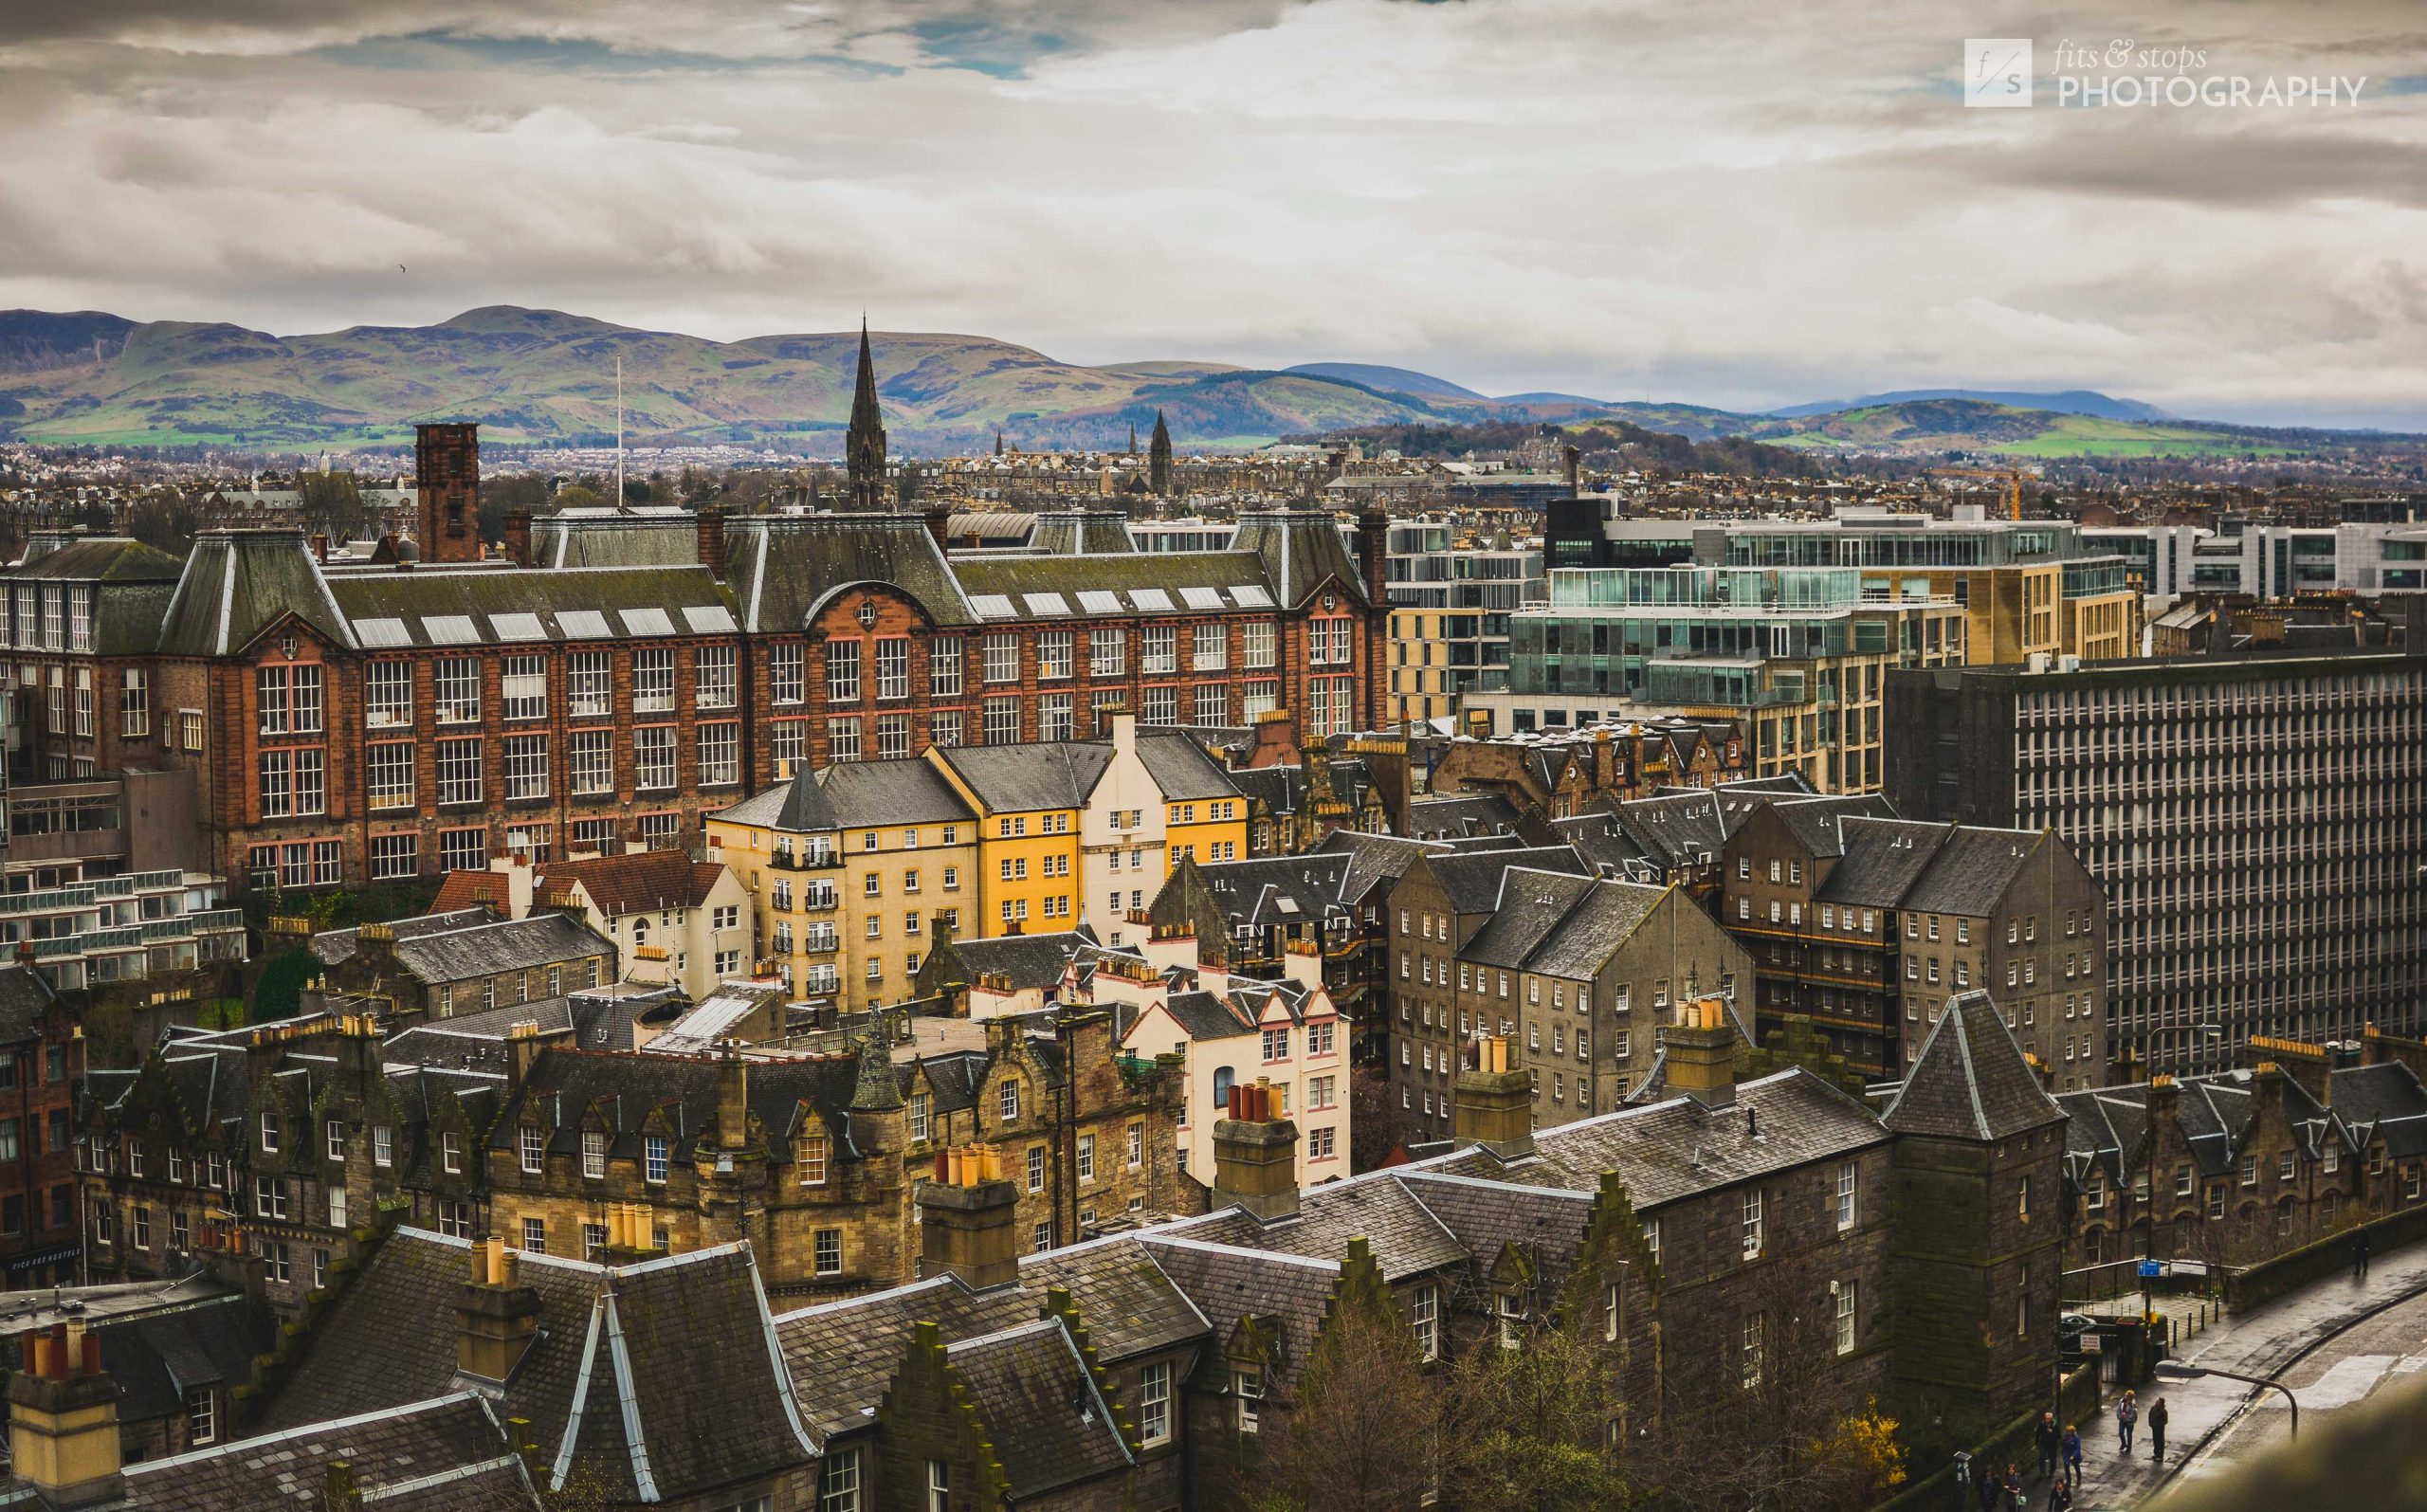 A landscape photograph of the rooftops of Edinburgh as taken from Edinburgh Castle in Scotland.